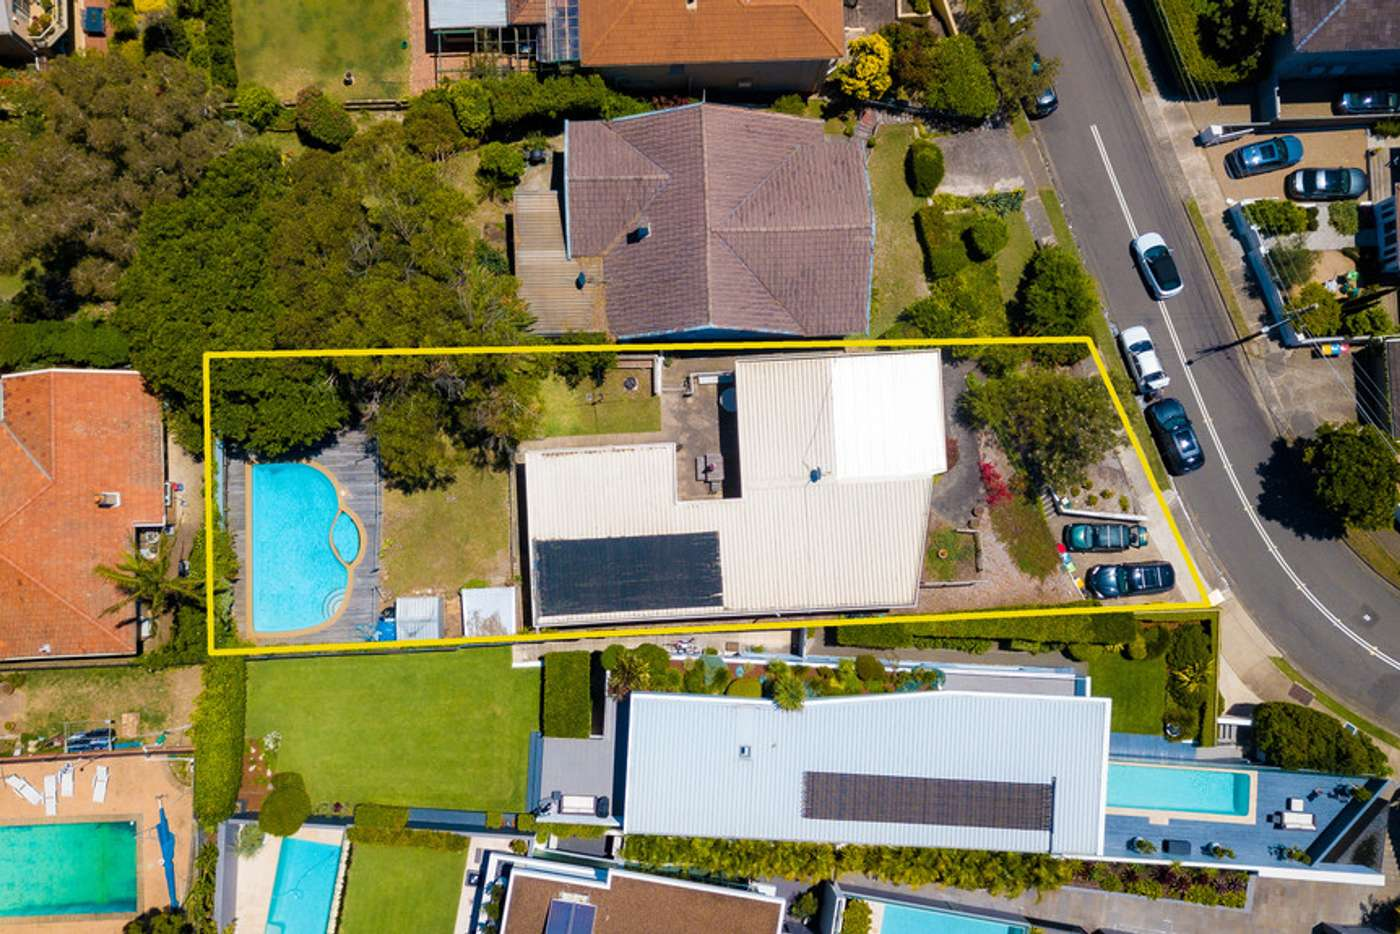 Main view of Homely house listing, 45 Beaumont Street, Rose Bay NSW 2029